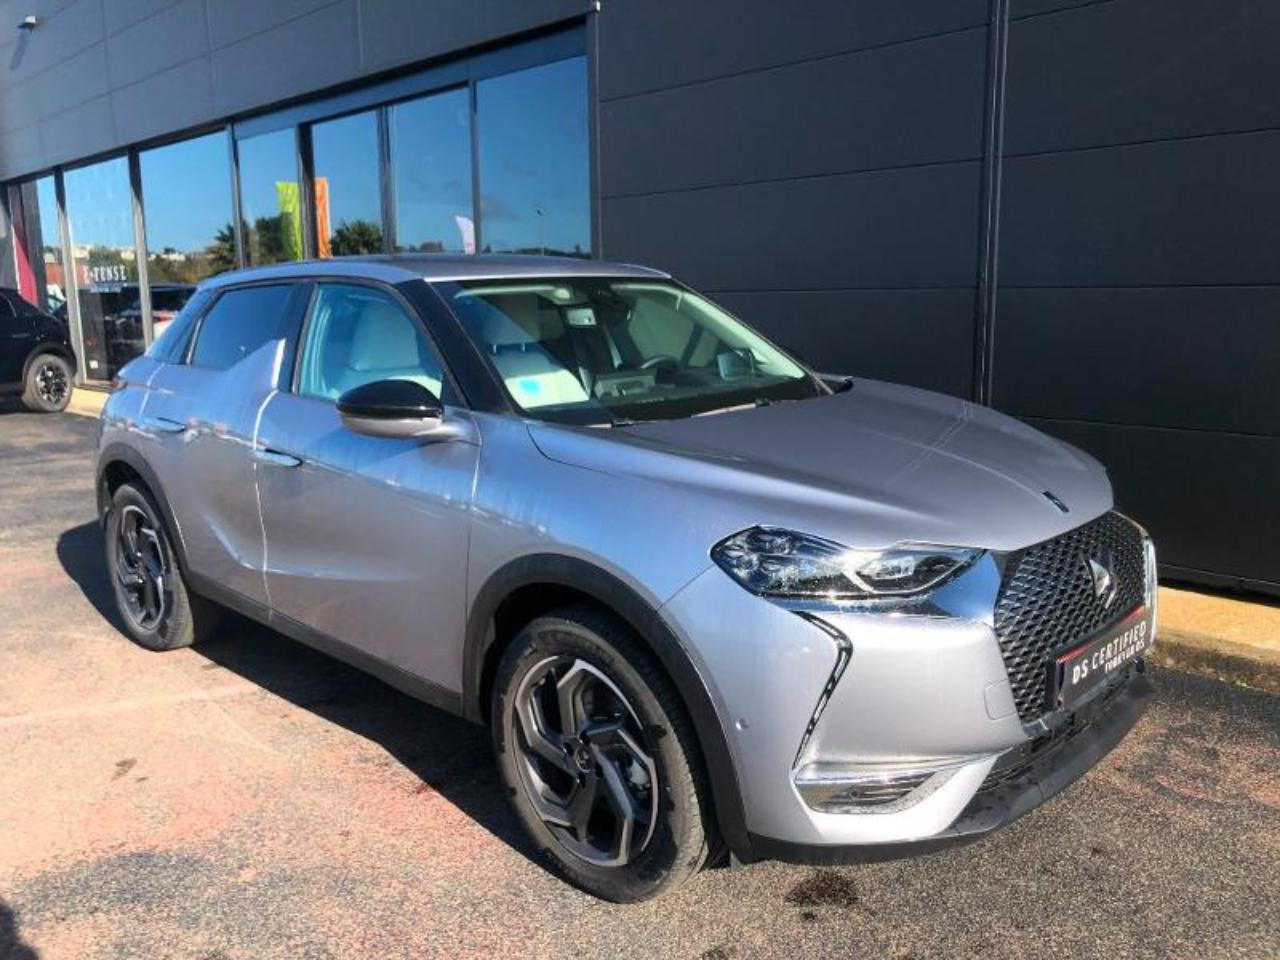 Ds DS 3 Crossback PureTech 130ch Grand Chic Automatique 109g